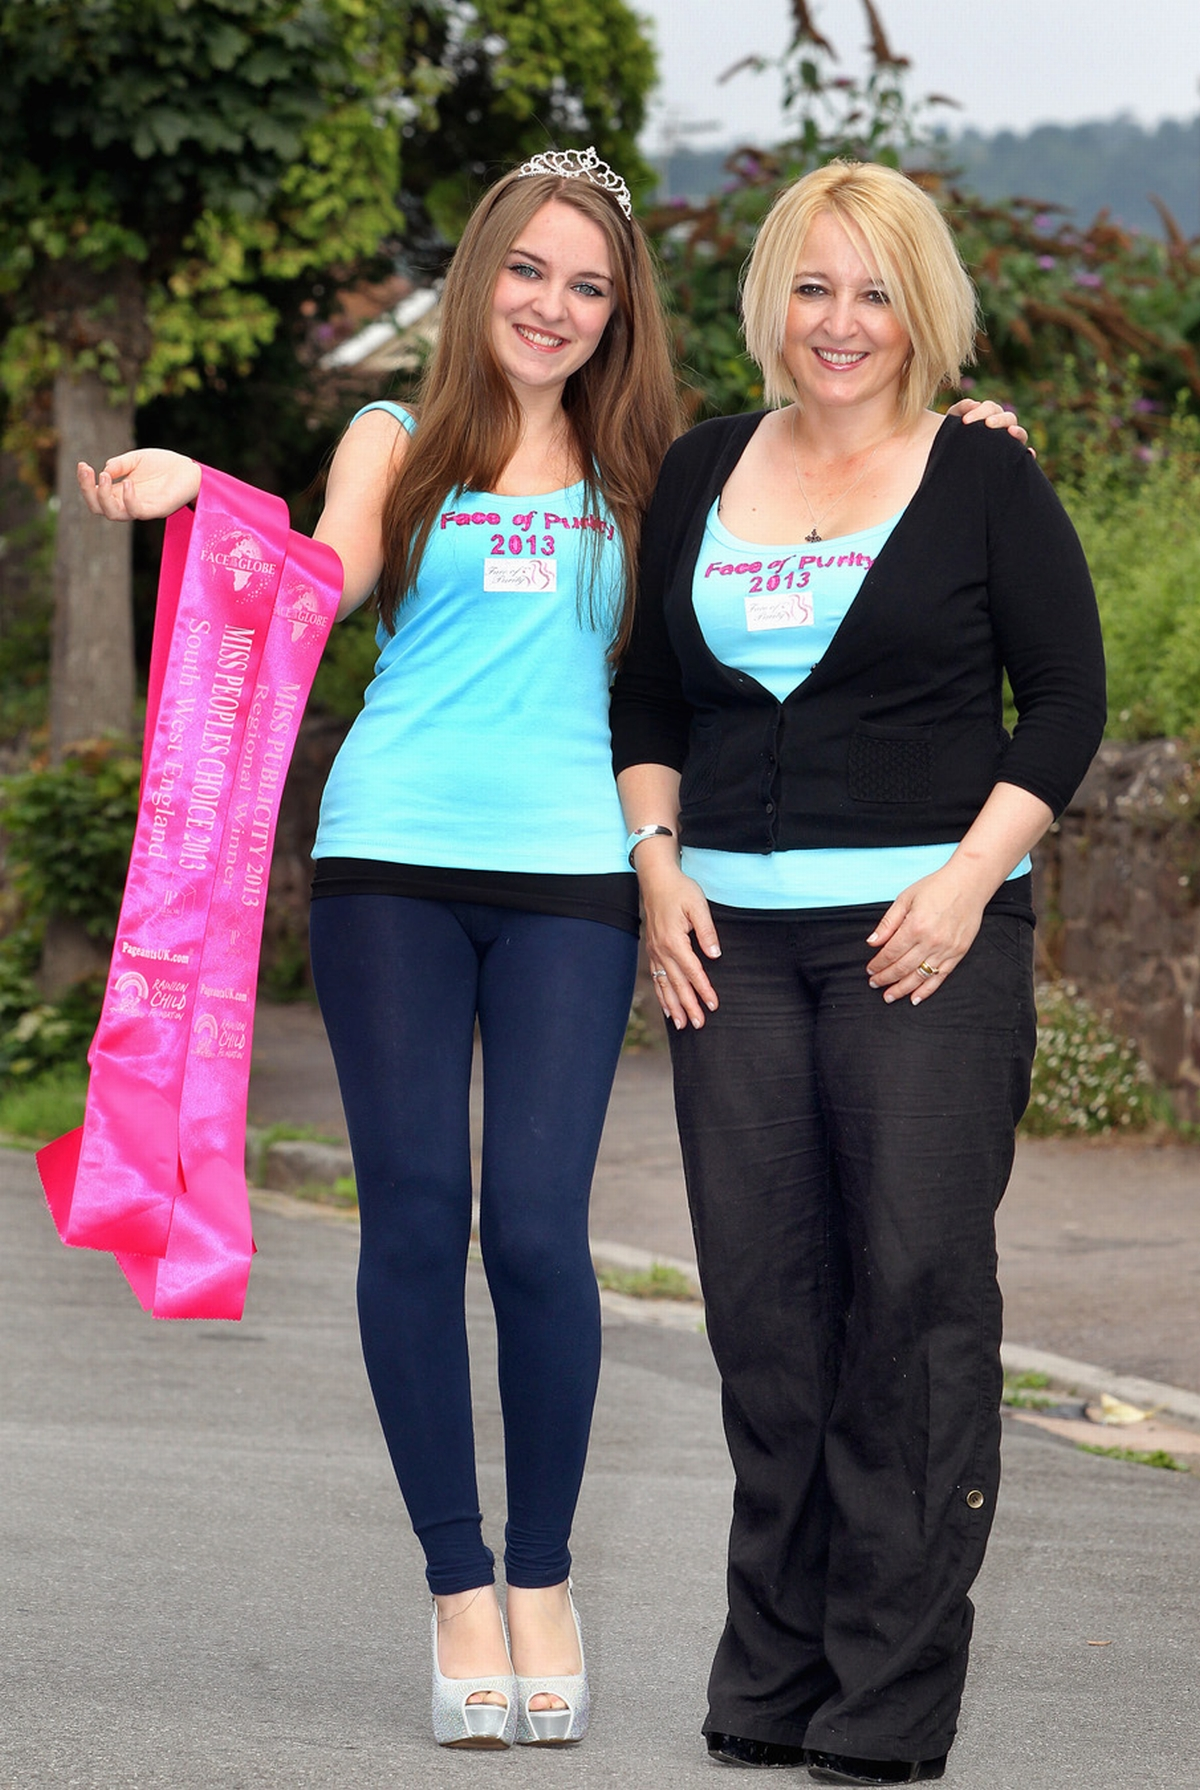 MORGAN Mancini, pictured with mum Charlie, is looking for talent acts to take part in this year's Face of Purity Pageant. PHOTO: Steve Guscott